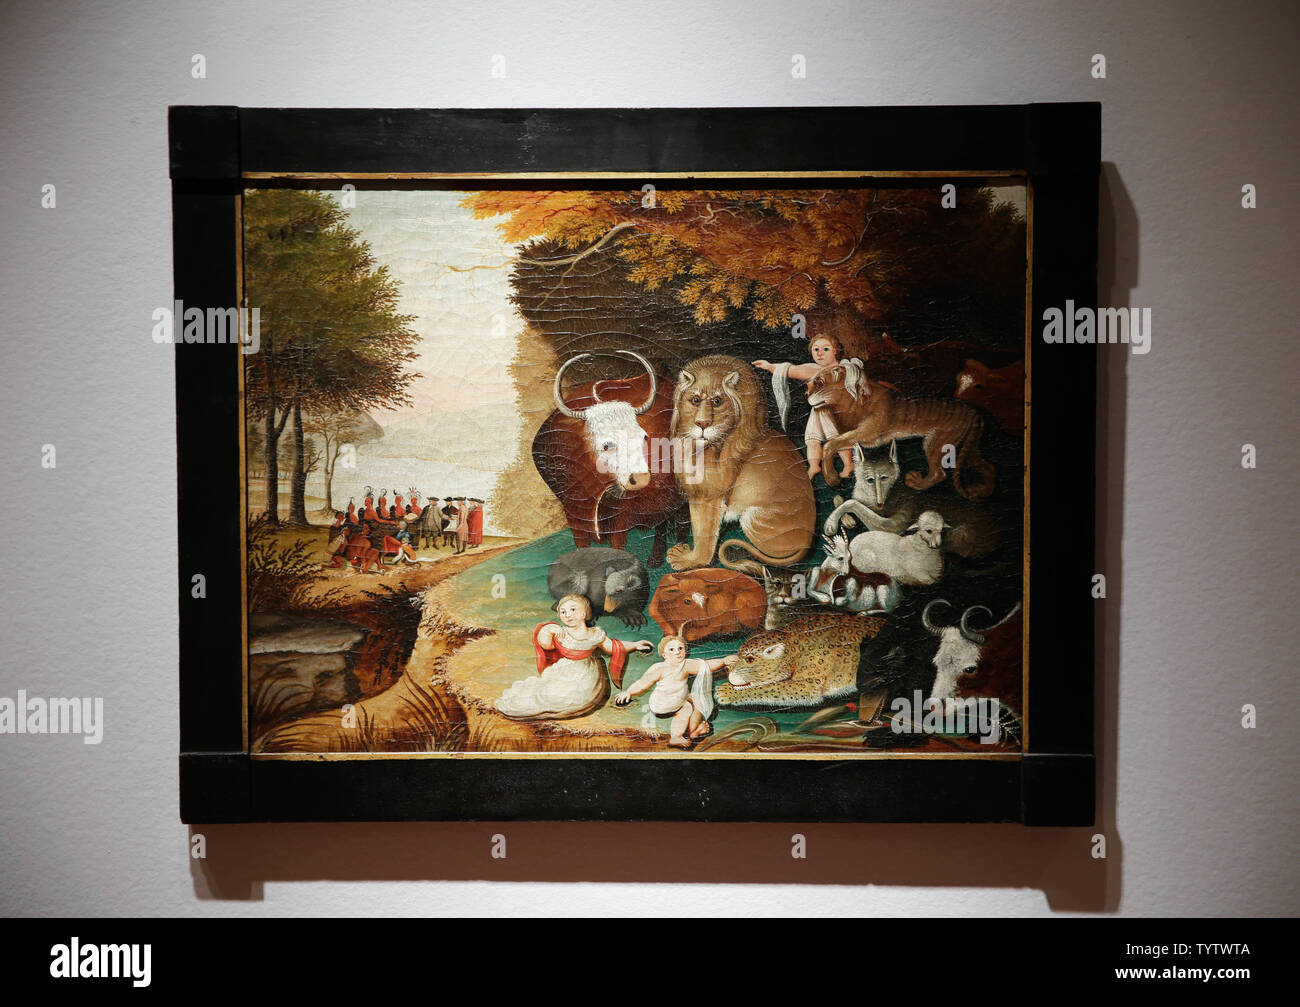 Edward Hicks' 'Peaceable Kingdom is on display at a press preview of auction titled 'Important American Furniture, Folk Art, Silver and Prints' at Christie's in New York City on January 12, 2019. The auction features Ammi Phillips' 'Girl in a Red Dress with a Dog', and Edward Hicks' 'Peaceable Kingdom, both estd $800,000 - $1.2 million. The auction takes place on January 17th and 18th.     Photo by John Angelillo/UPI - Stock Image